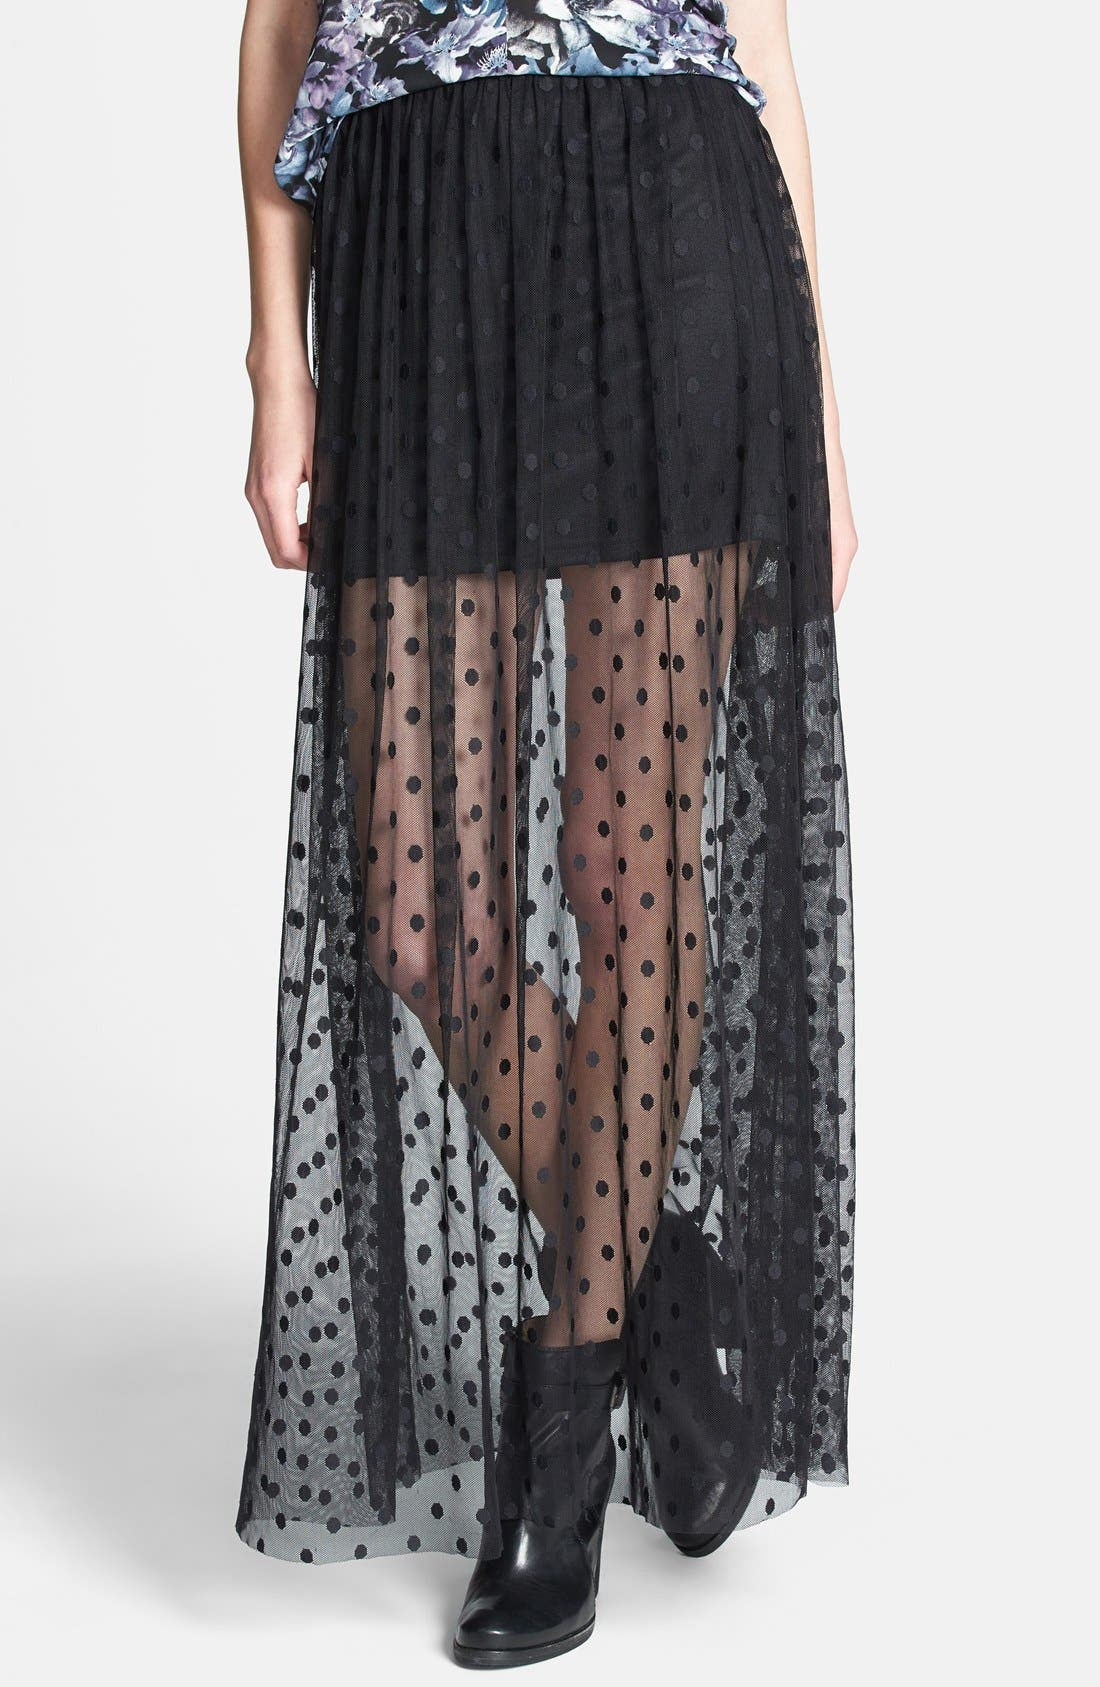 Alternate Image 1 Selected - ASTR Polka Dot Sheer Maxi Skirt (Nordstrom Exclusive)